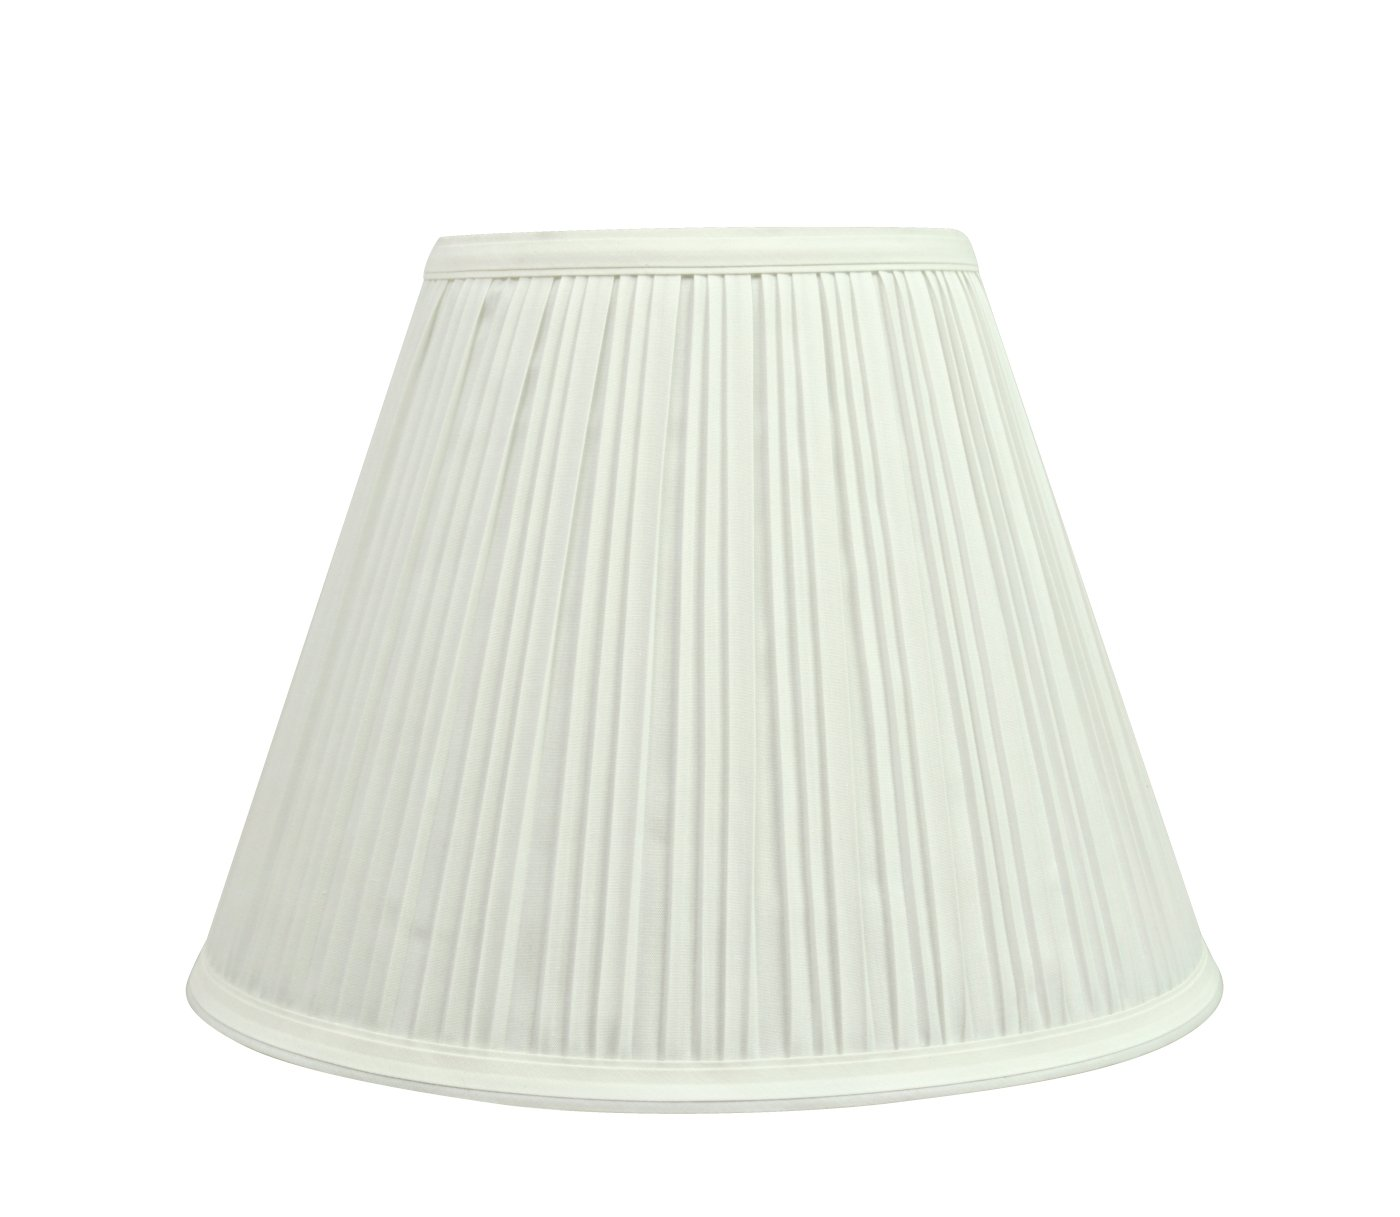 """Aspen Creative 59101 Transitional Pleated Empire Shape Uno Construction Lamp Shade 10"""" Wide, 5"""" x 10"""" x 8"""", Off White"""